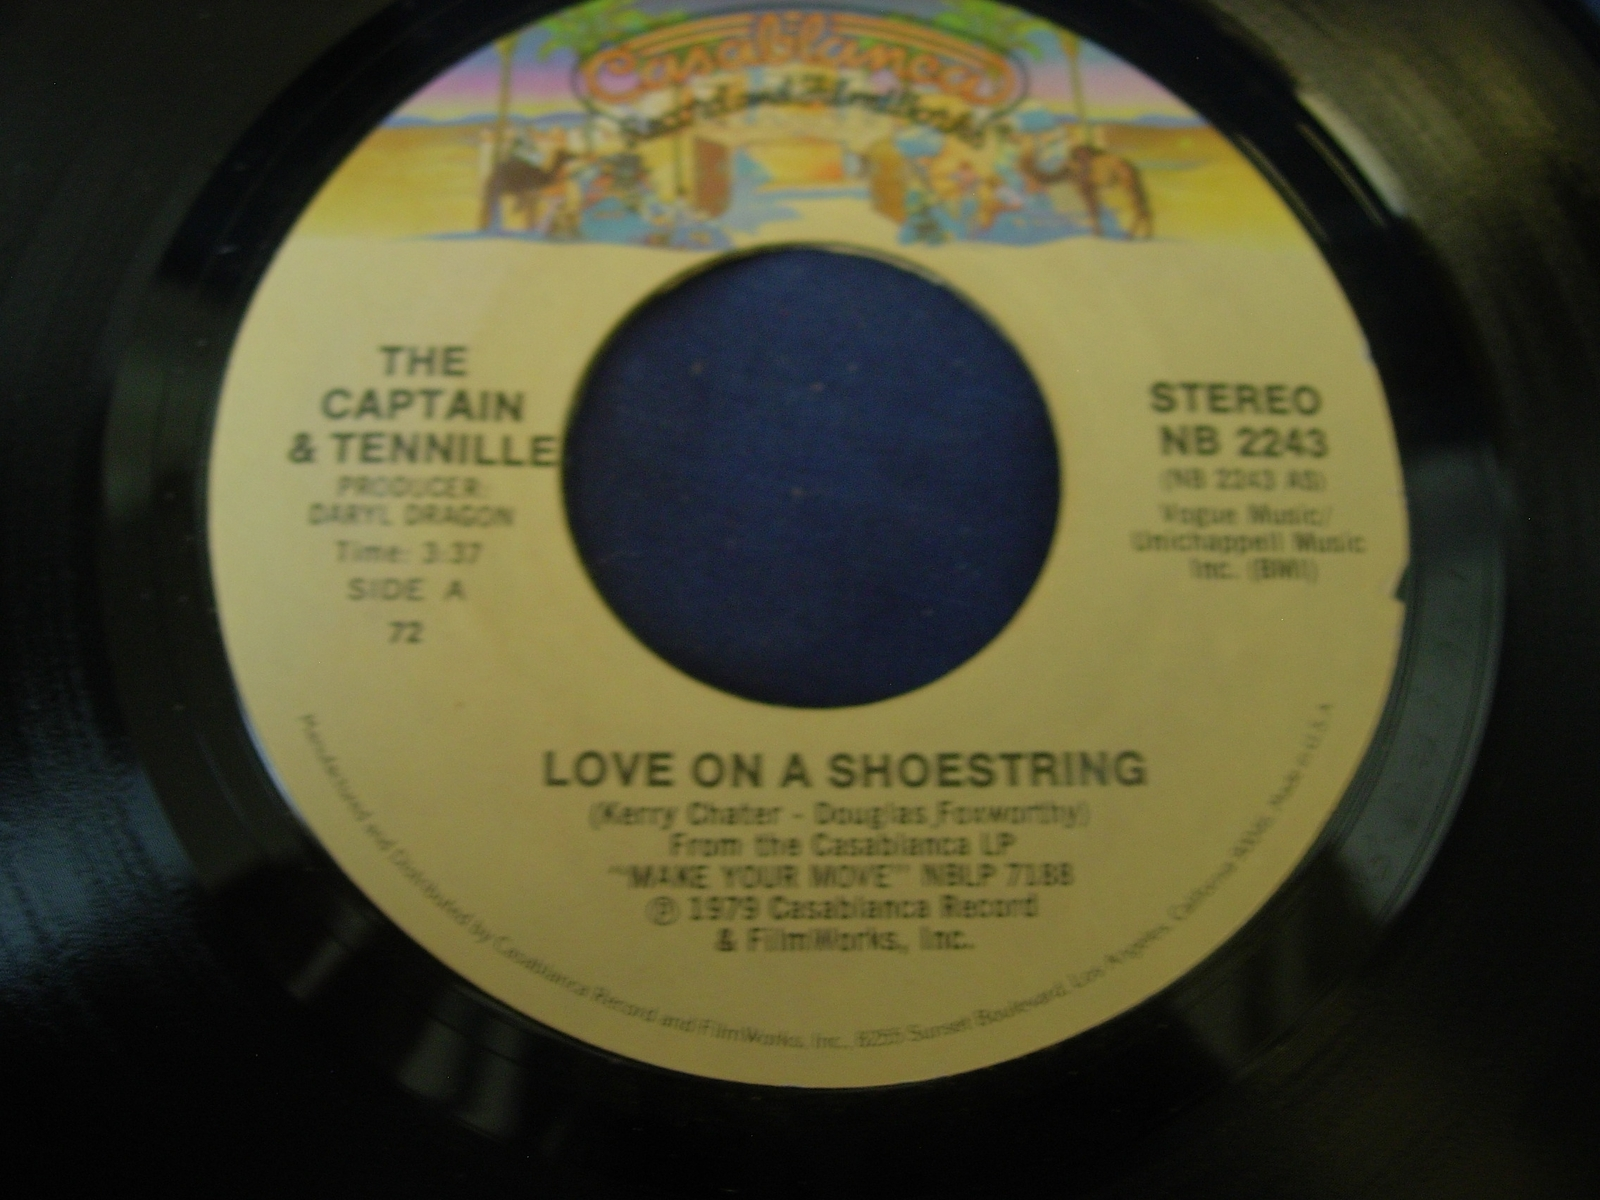 The Captain & Tennille - Love On a Shoestring / How Can You Be So Cold  NB 2243